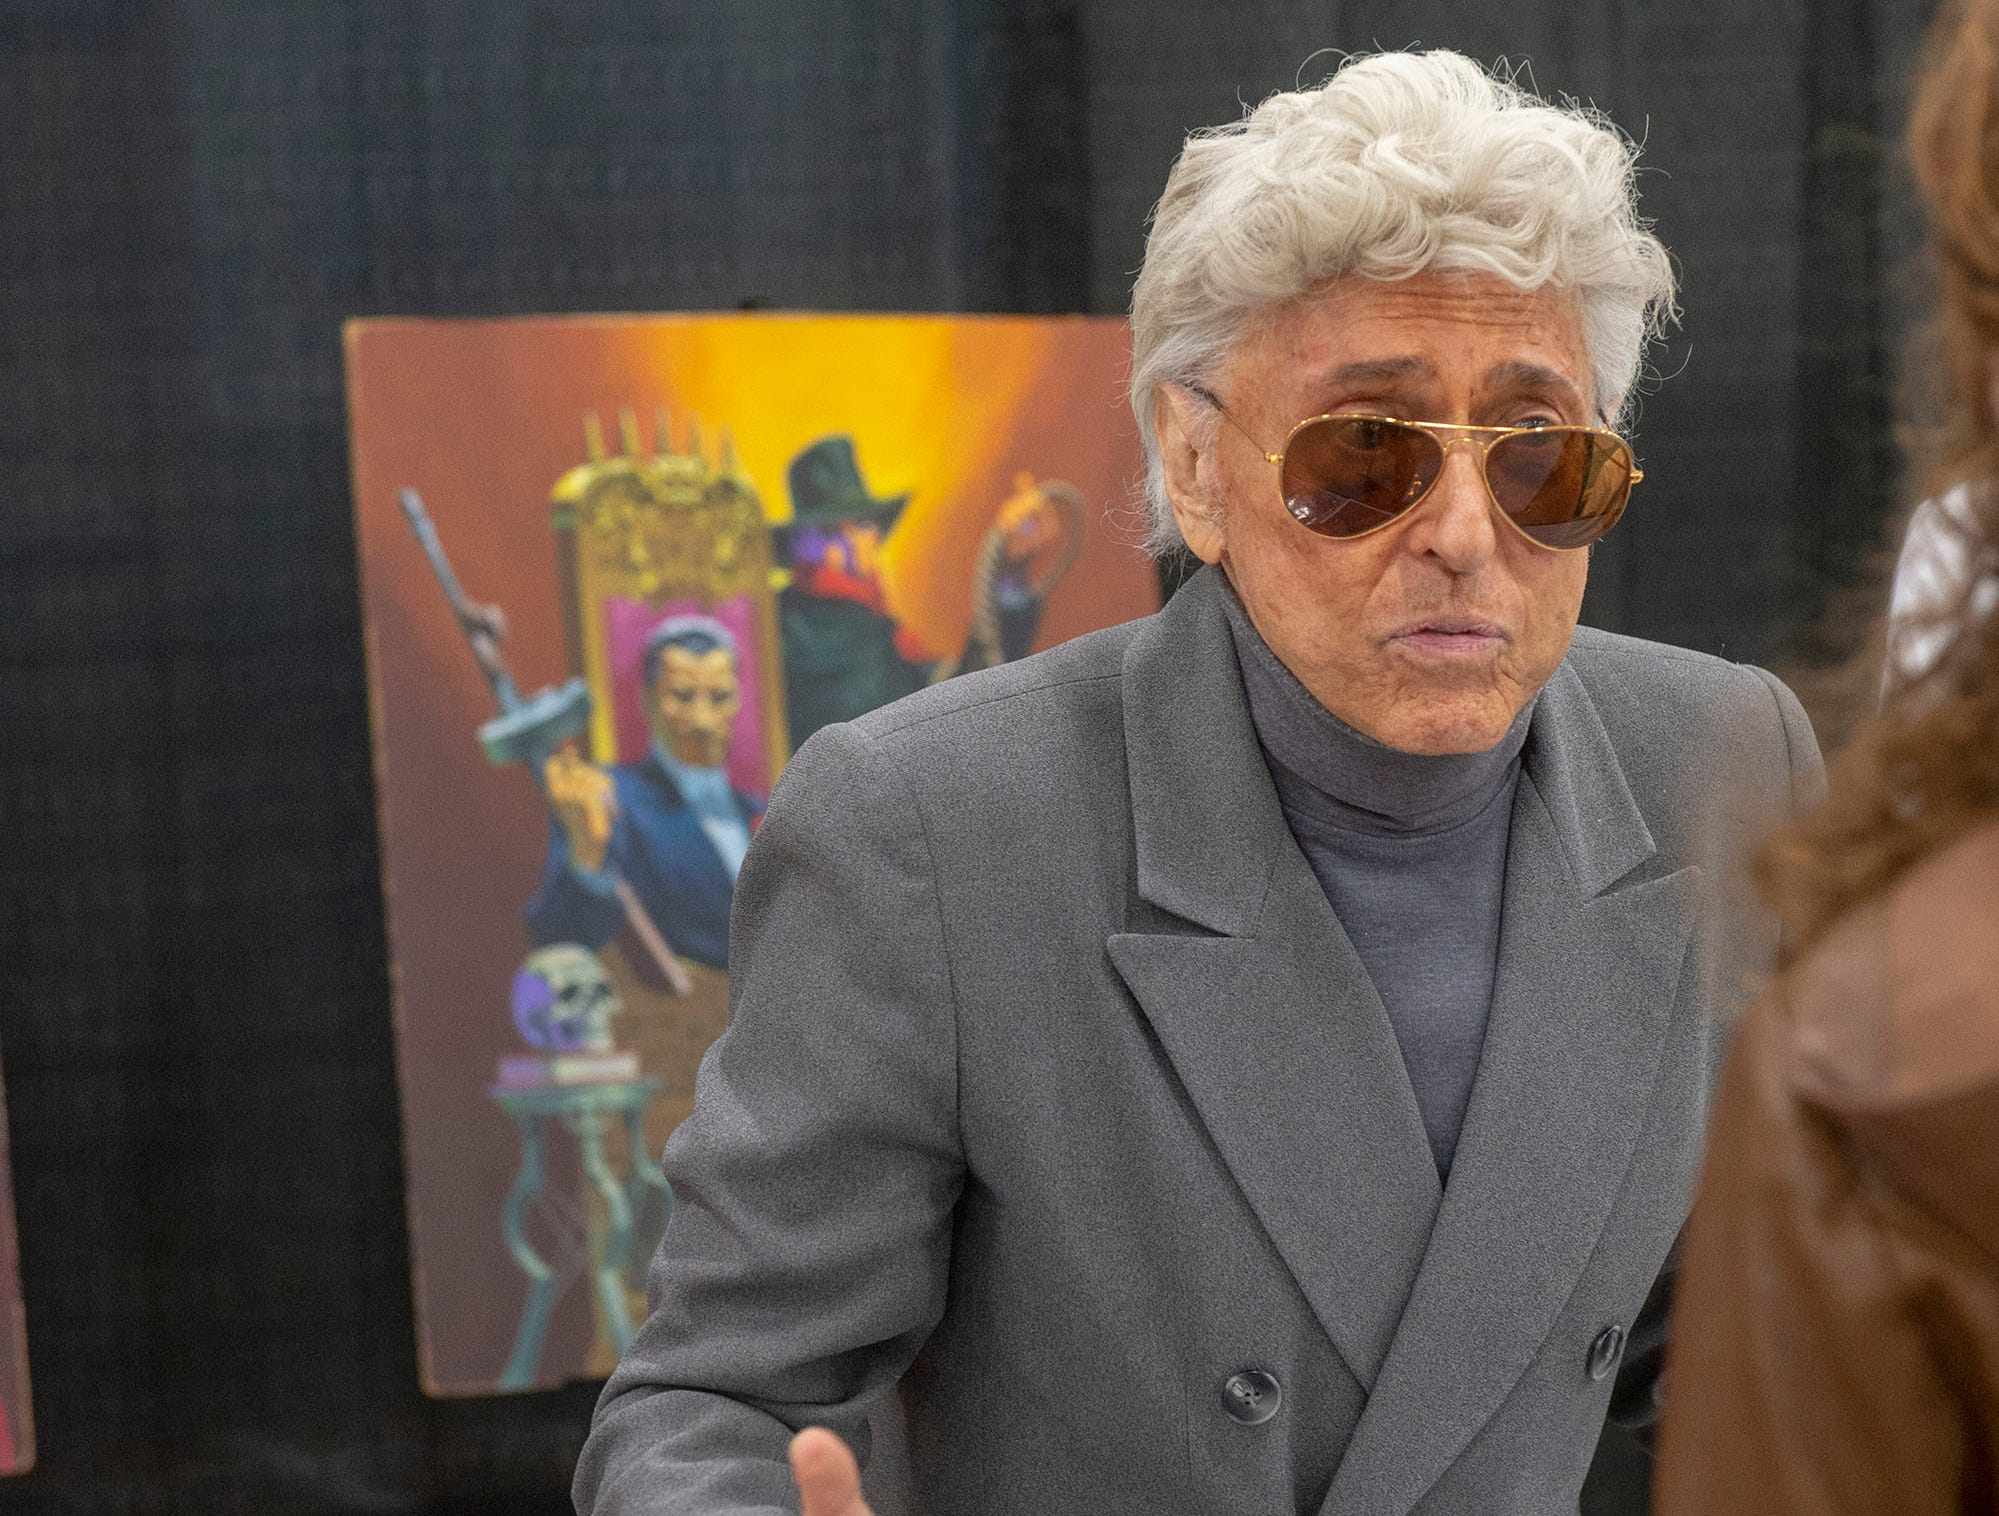 Jim Steranko, one of the most influential people in the comic book industry, talks with a fan Saturday at the White Rose Comic Con, which runs through Sunday, March 24, 2019 at Utz Arena of the York Fairgrounds.